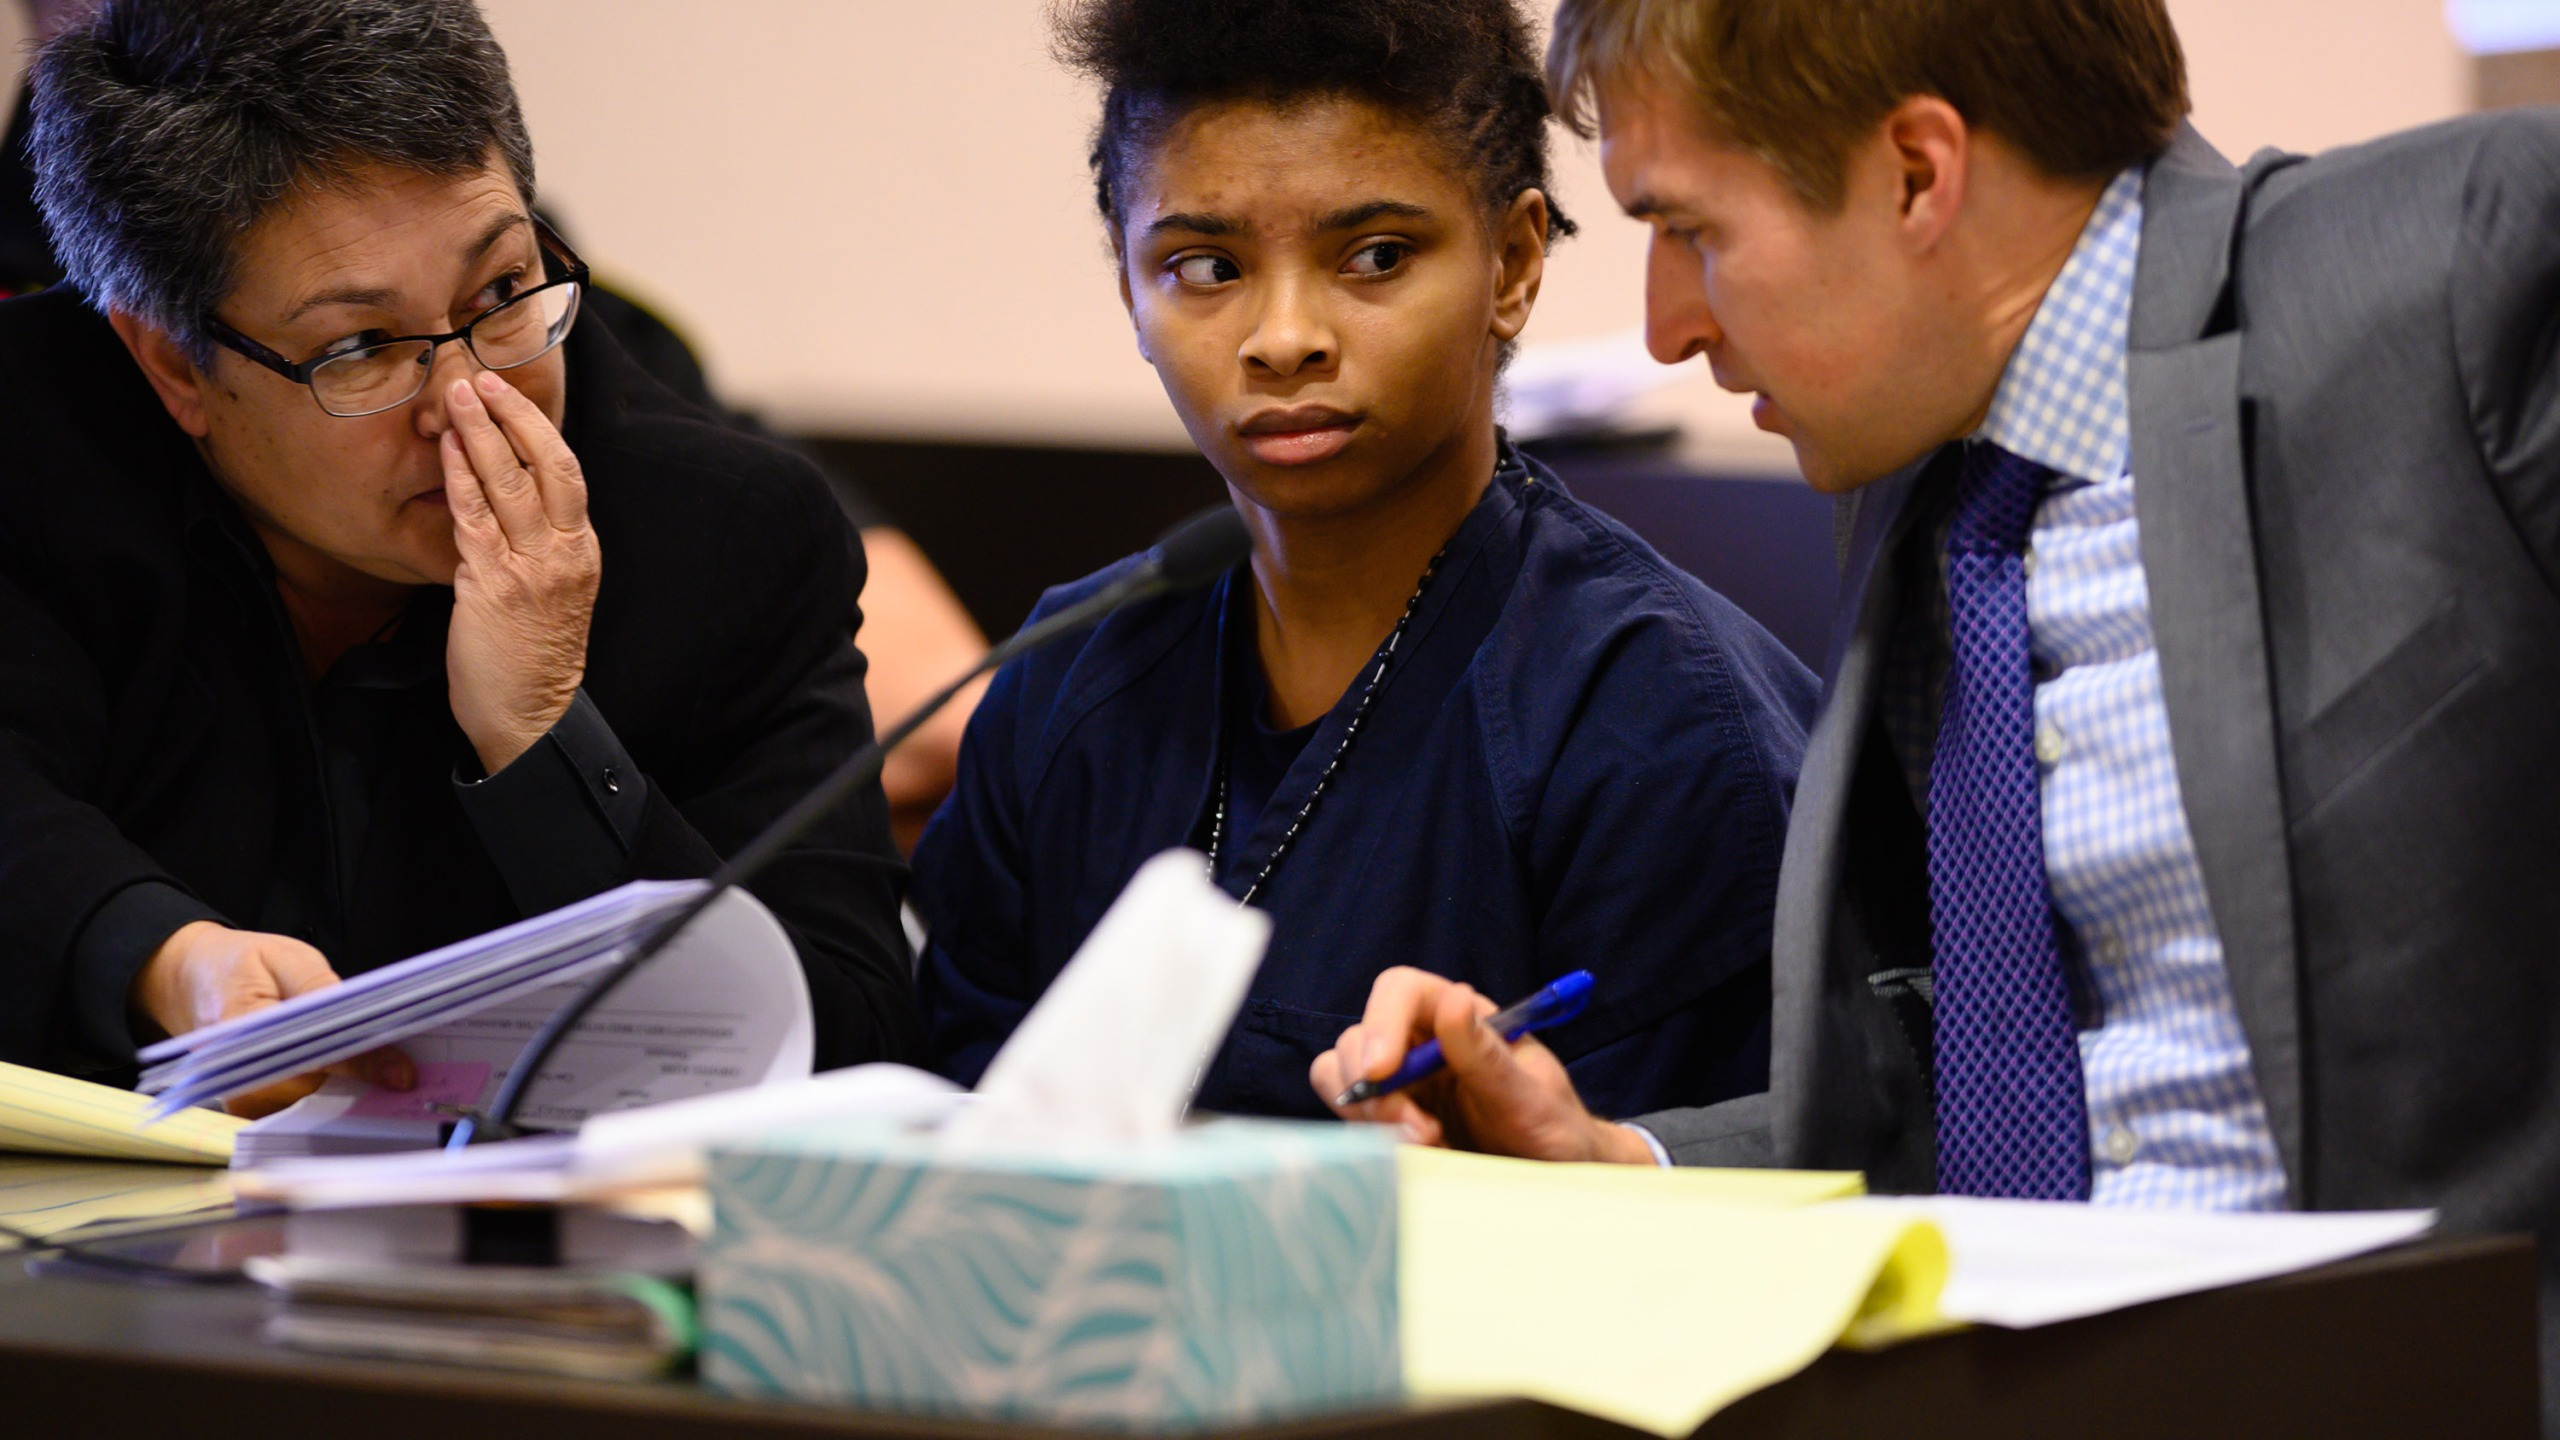 Chrystul Kizer, the teenager accused of killing her alleged sex trafficker was released from jail Monday on $400,000 bond. (Sarah L. Voisin/The Washington Post/Getty Images via CNN Wire)